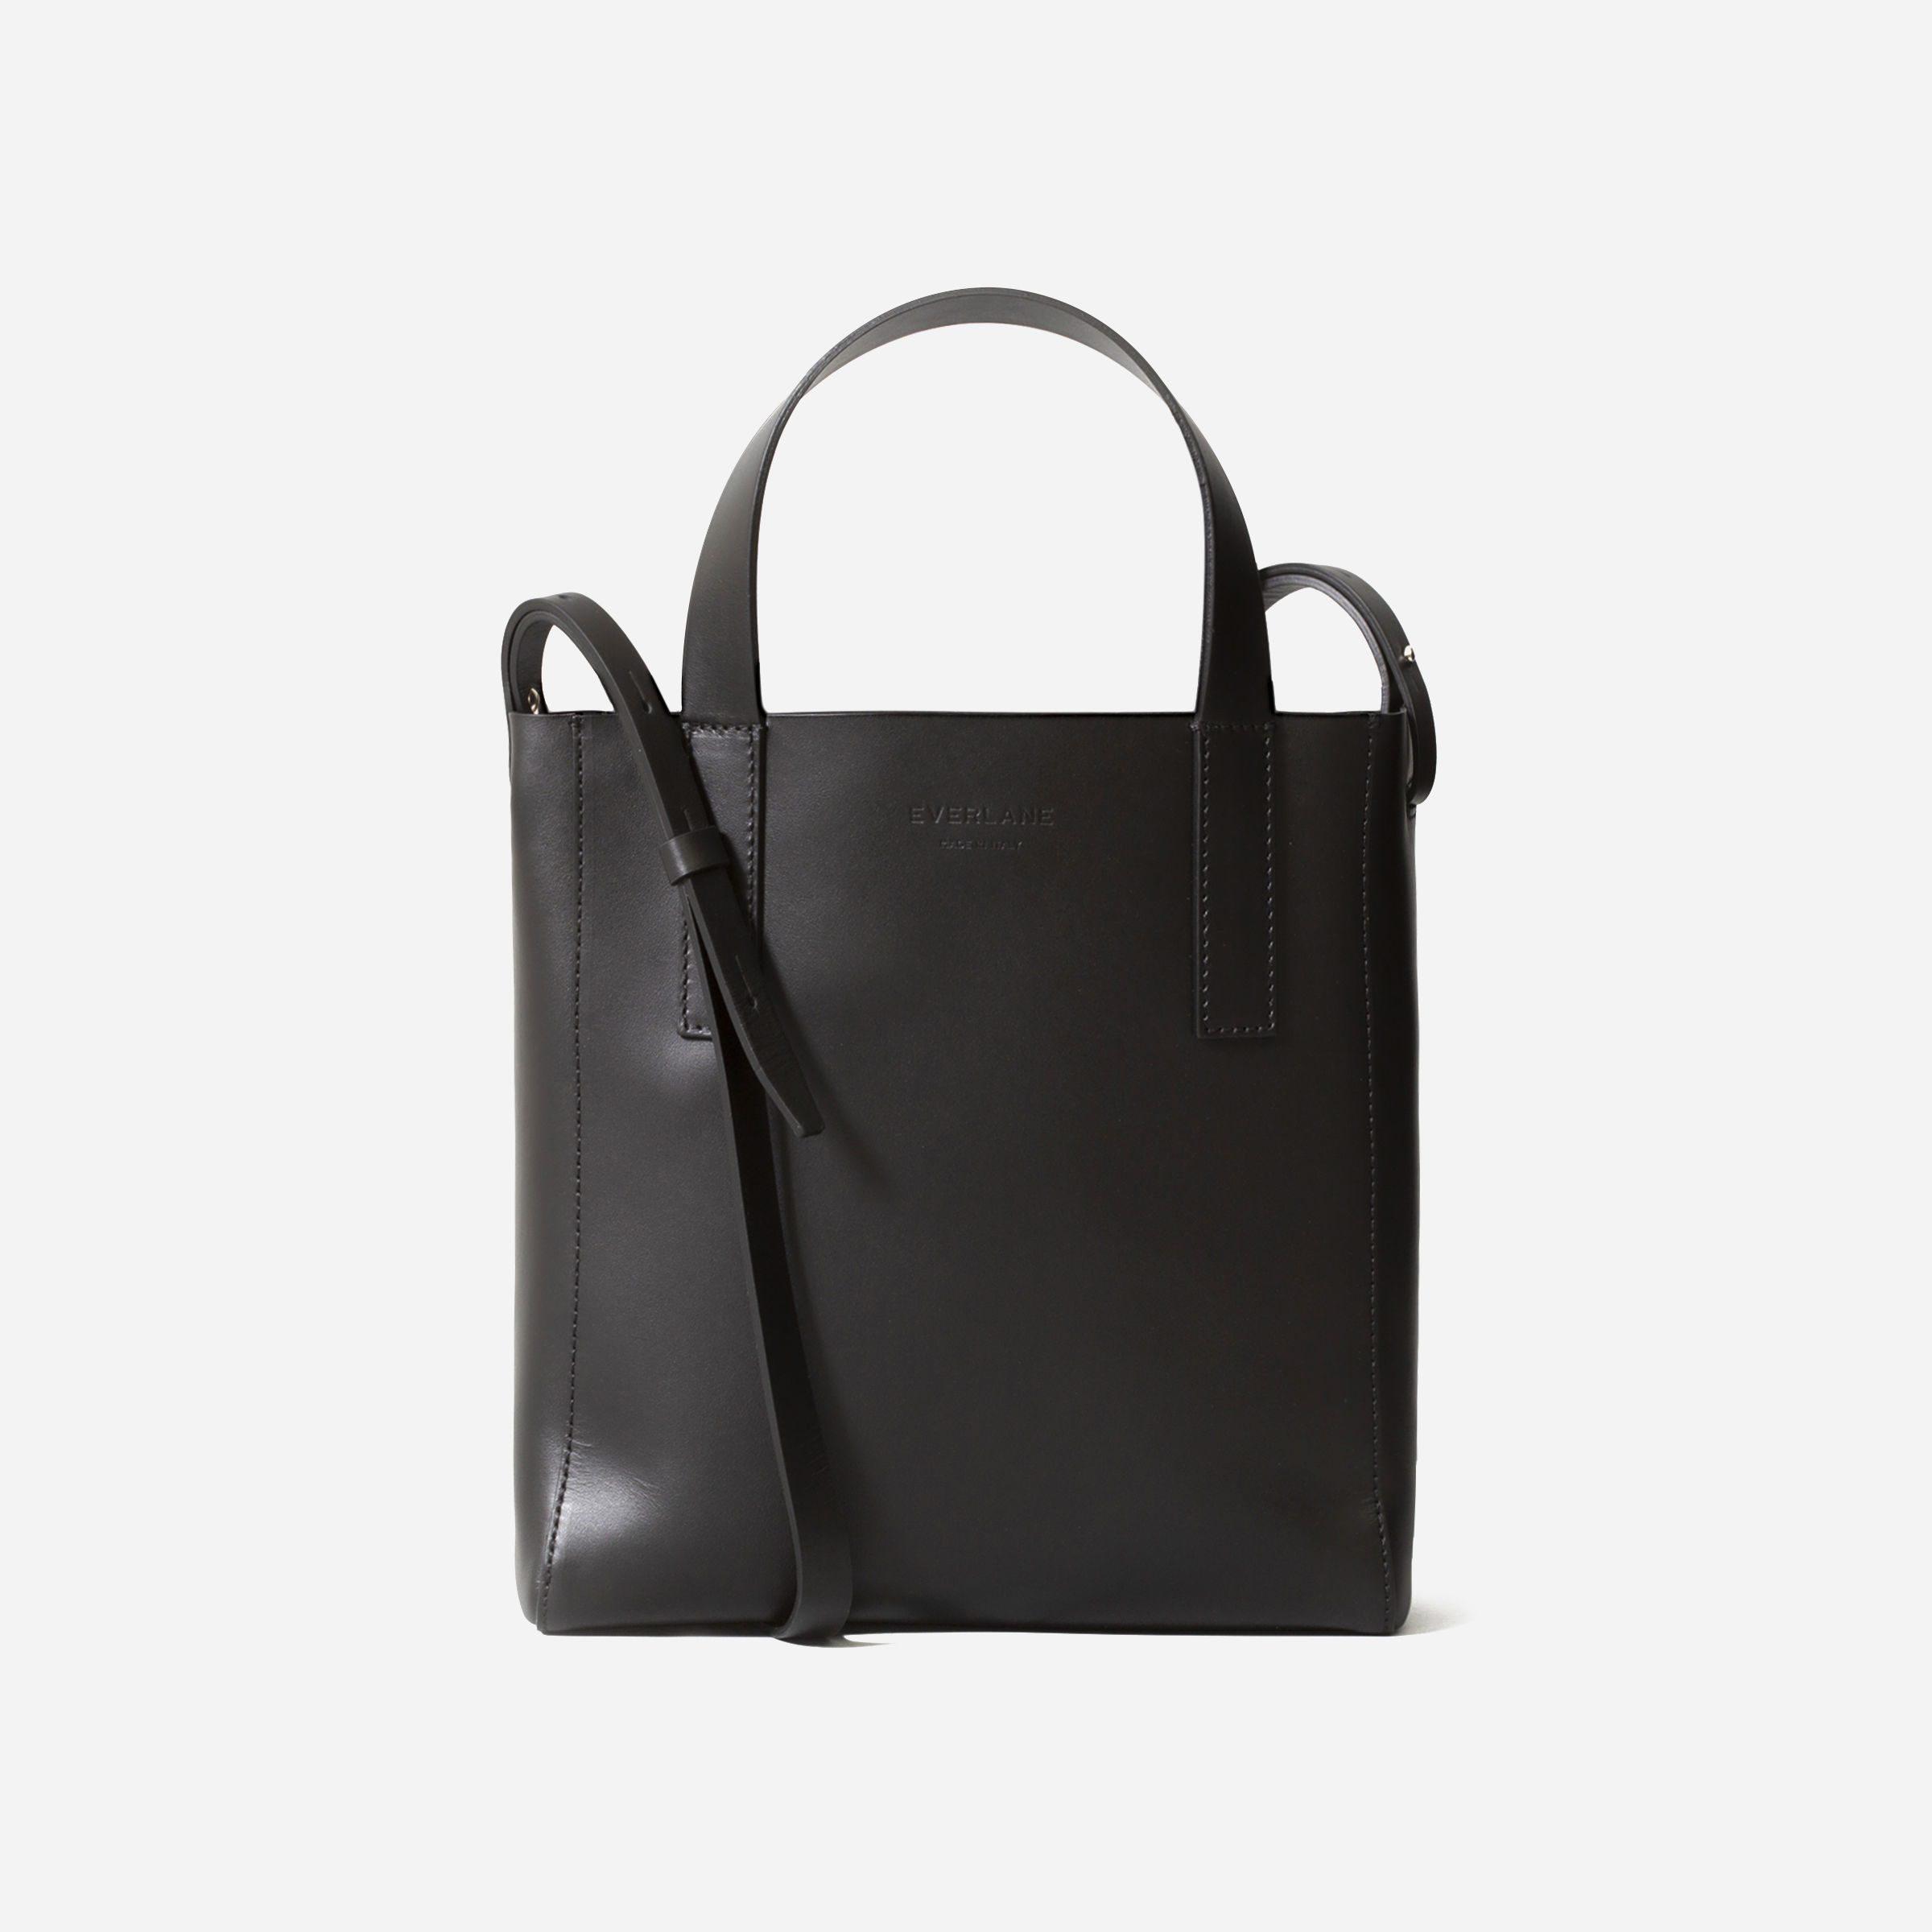 18ac534928d2 Women's Leather Bags – Spanish & Italian Leather Handbags | Everlane